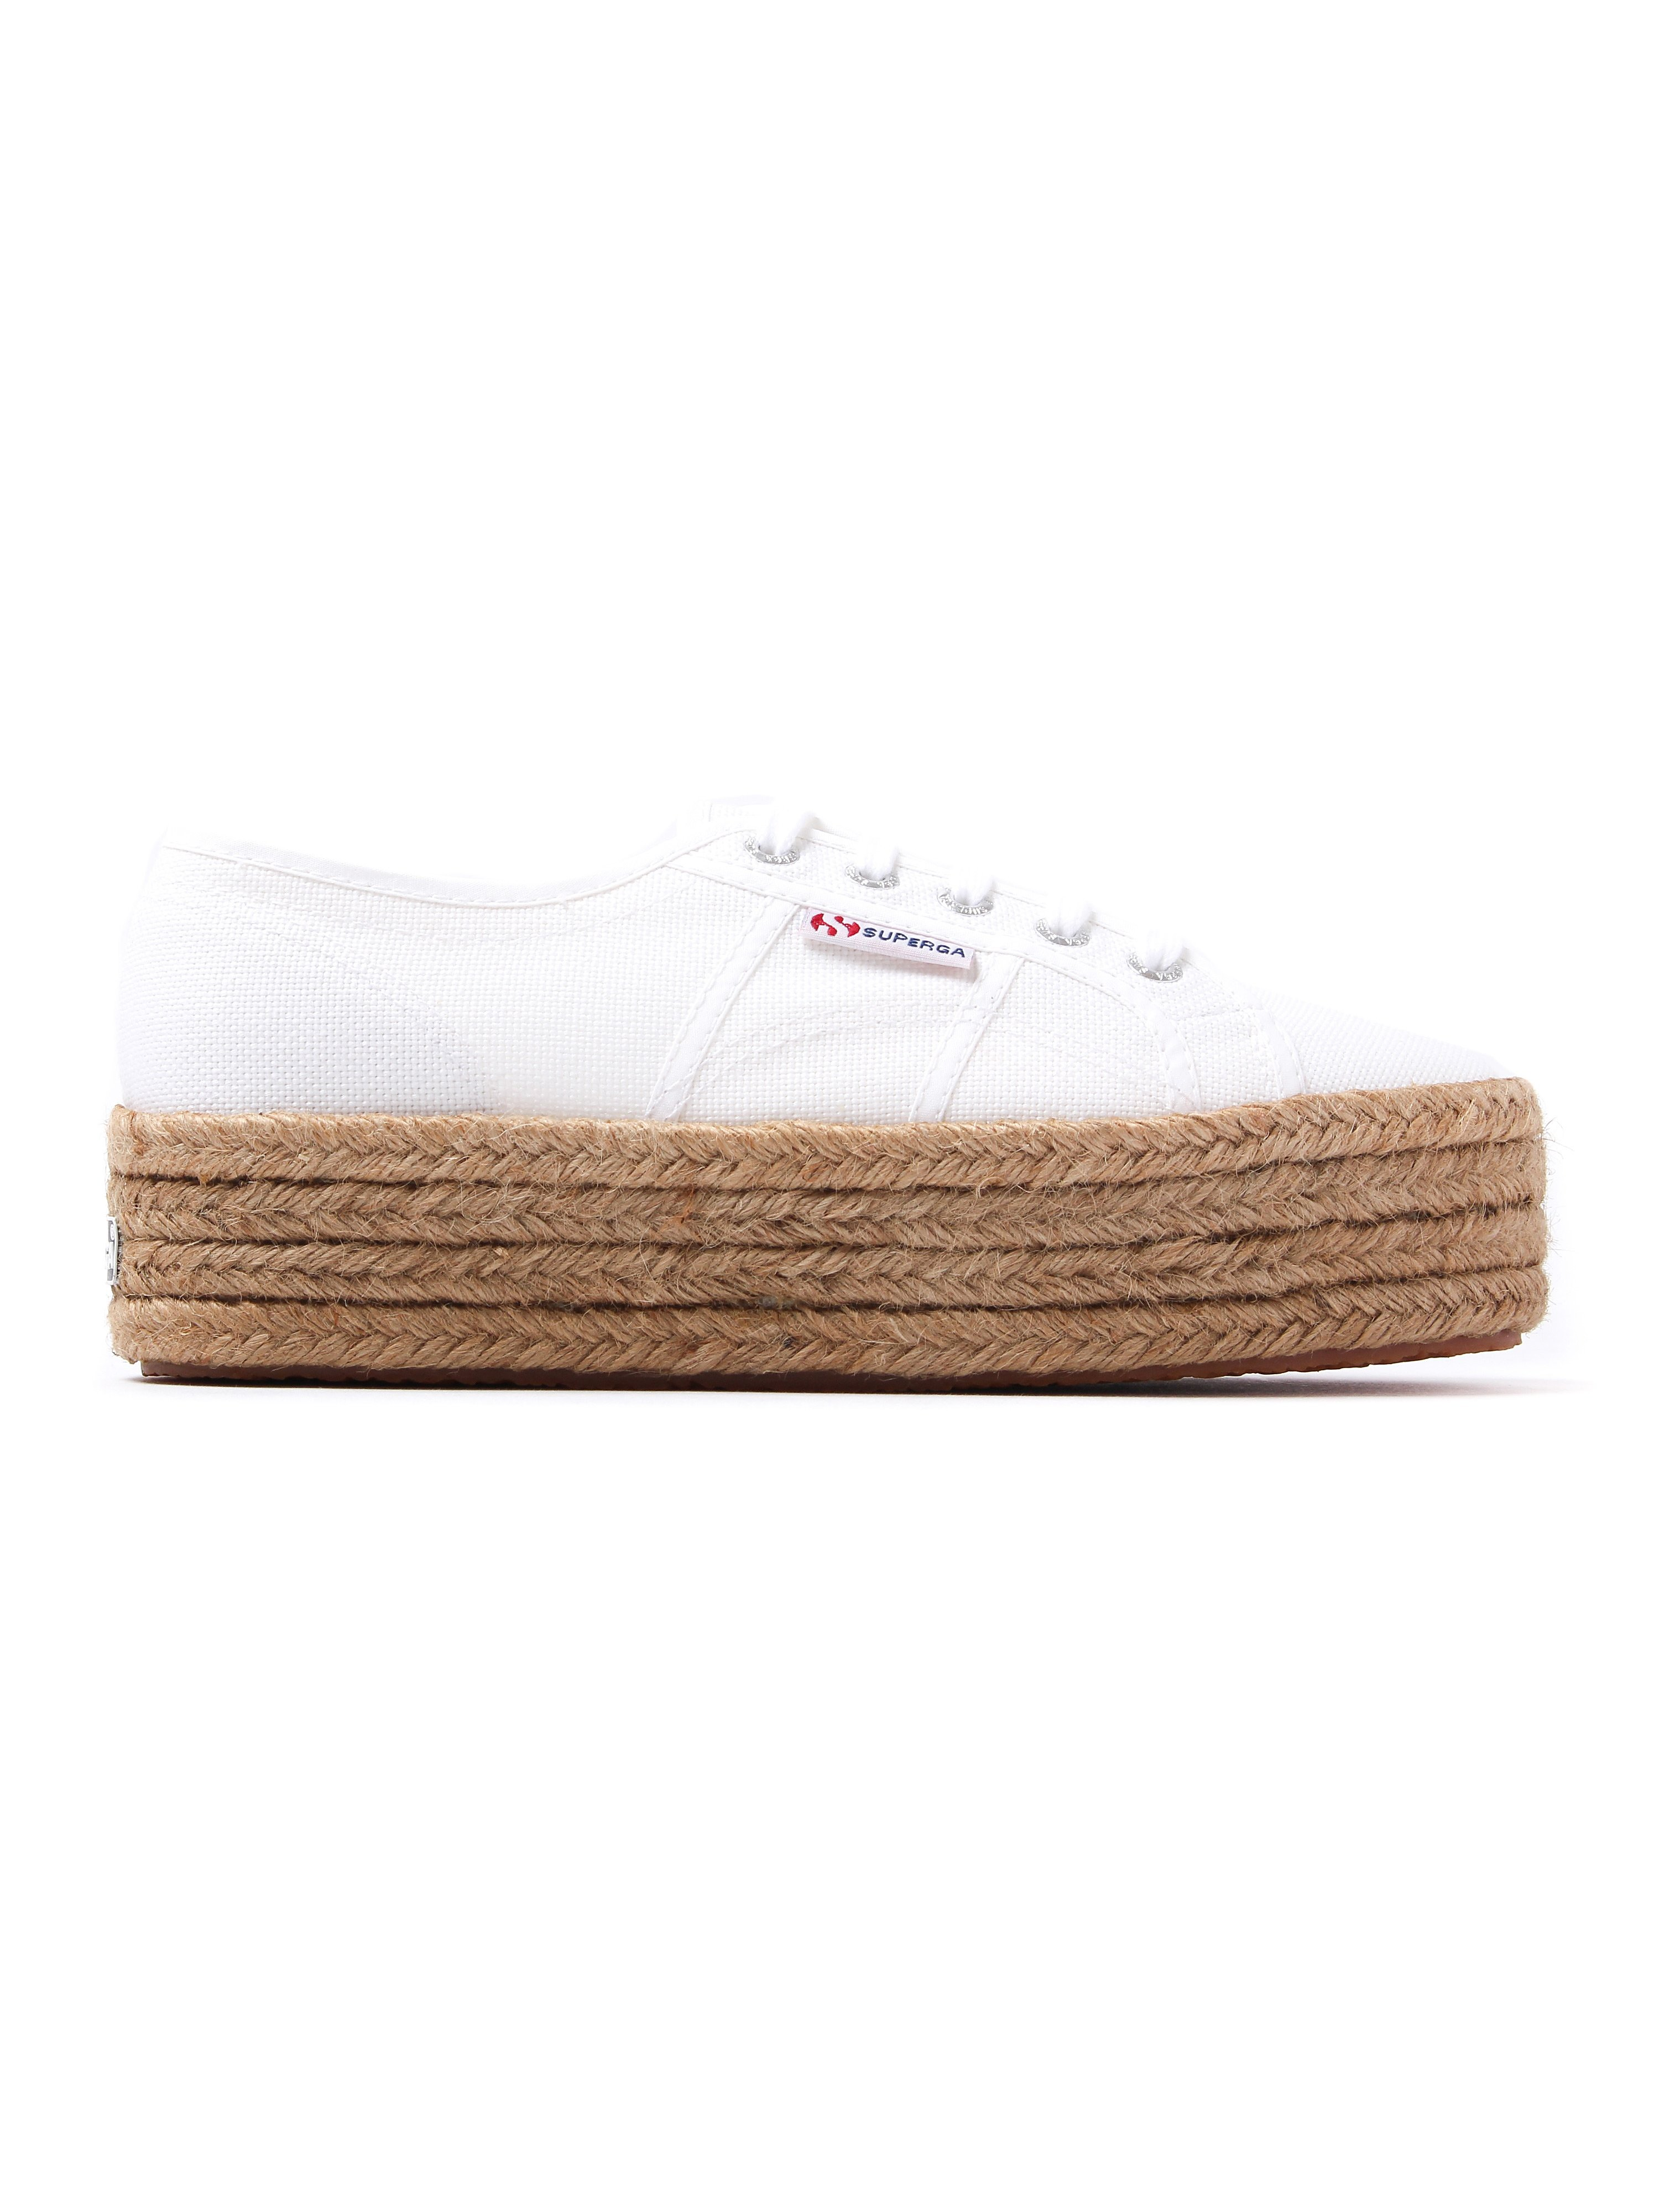 Superga Women's 2790 Cotrope Canvas & Rope Flatform Trainers - White